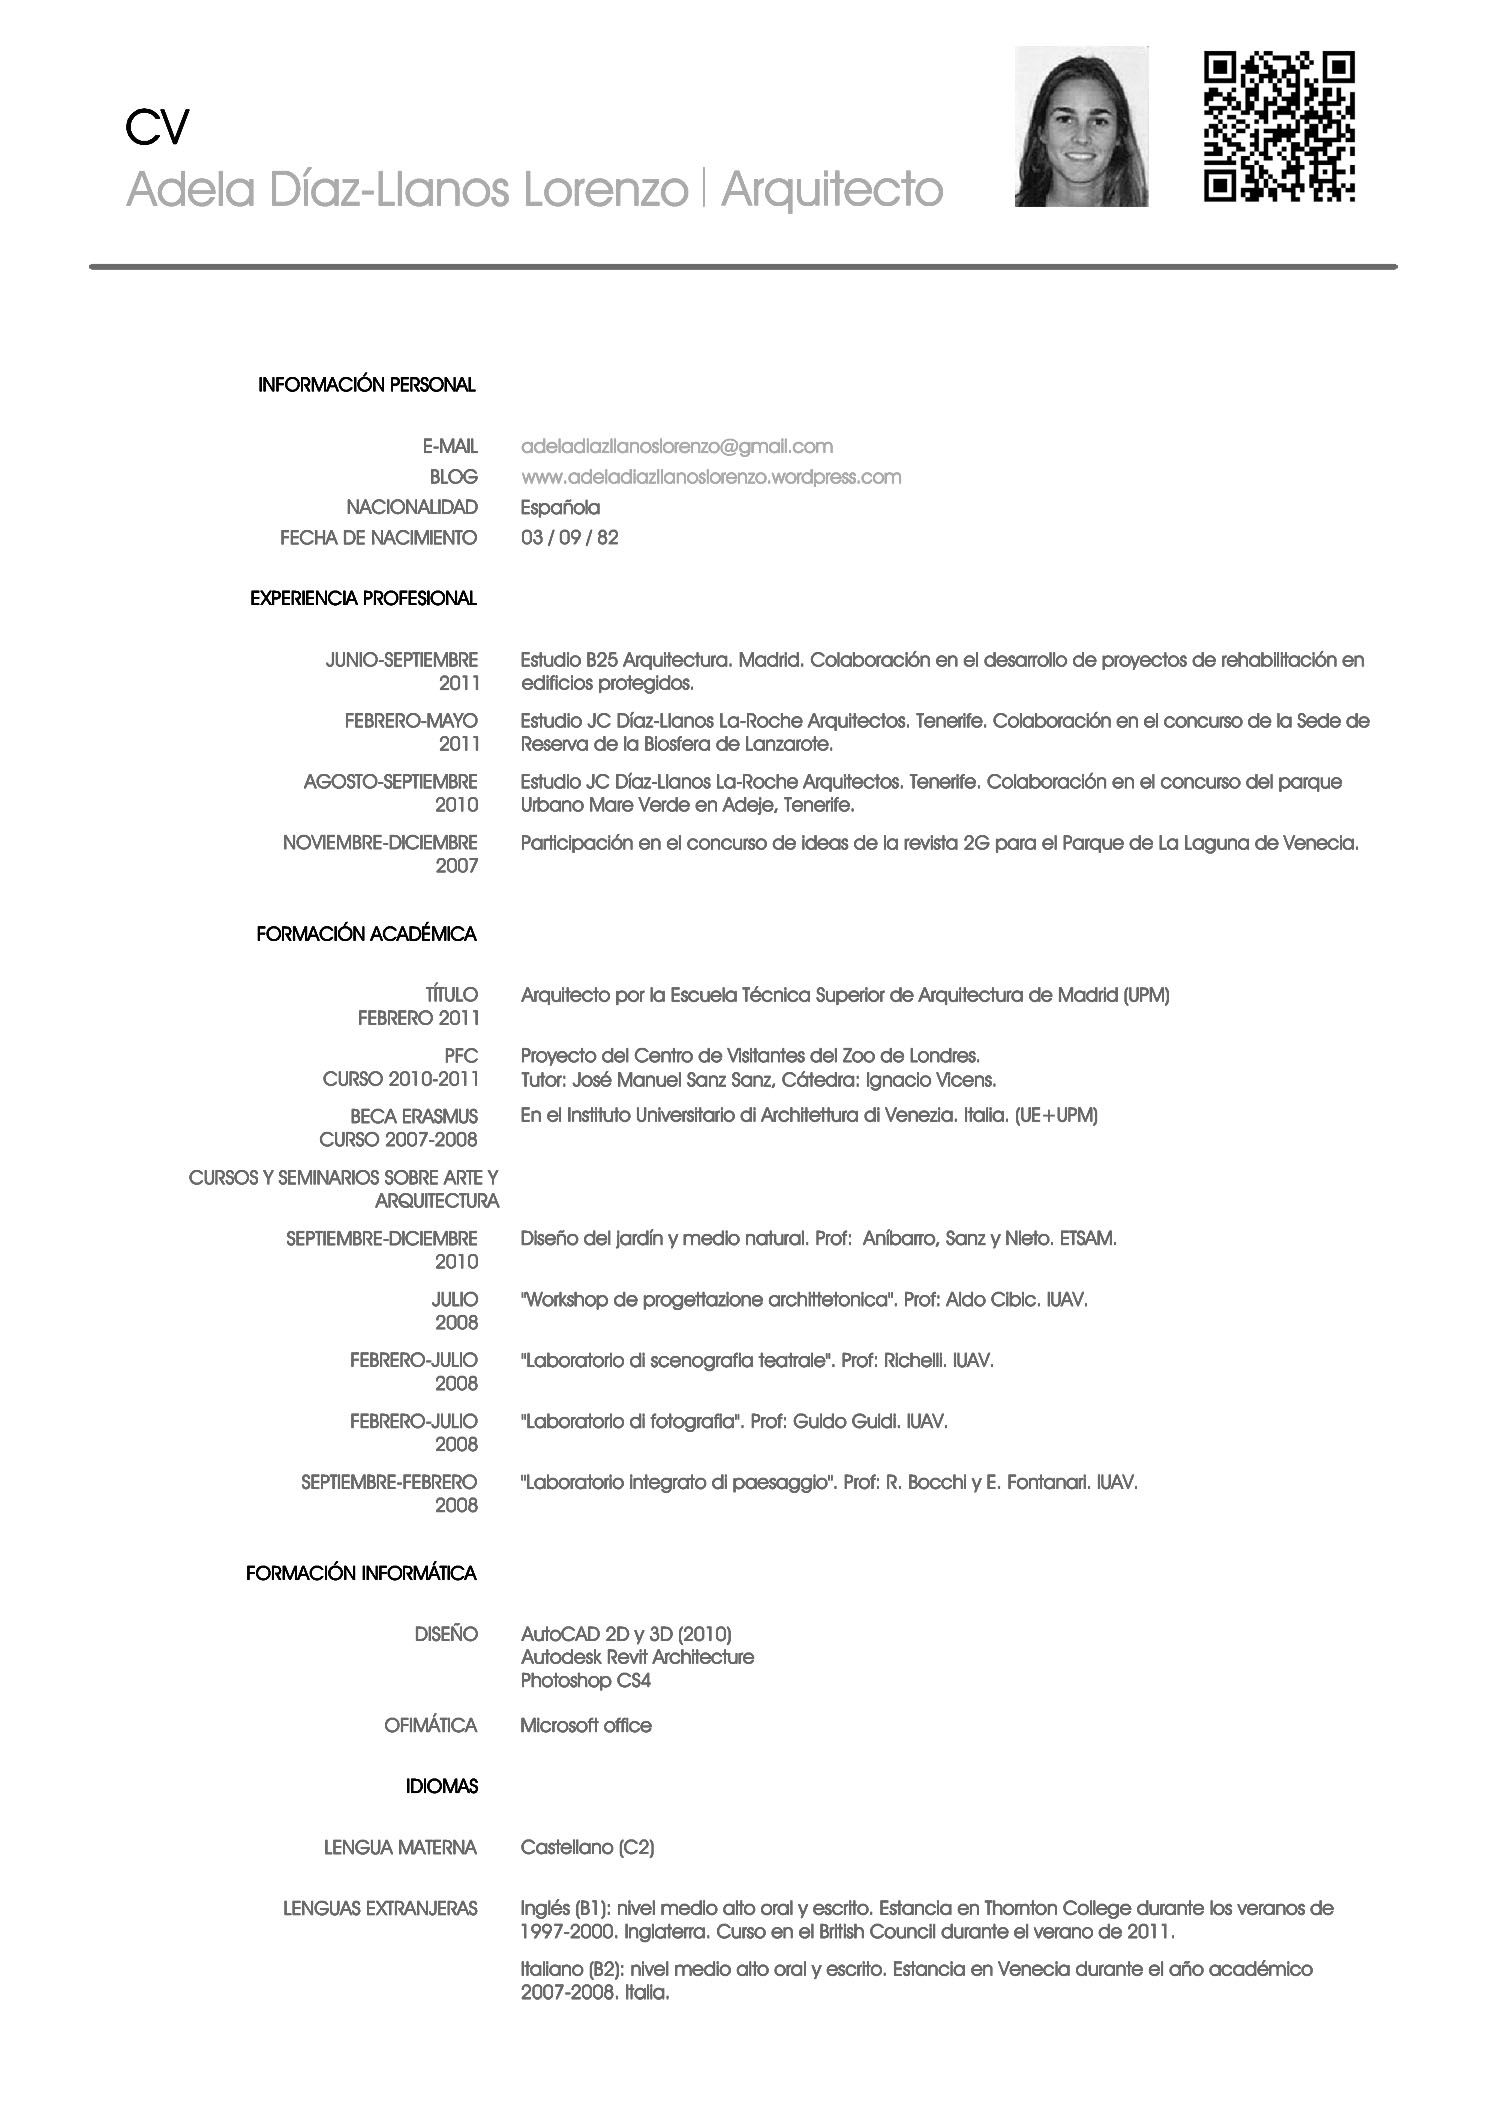 How To Write A Job Resume Resume Template Description Of Resumes Happytom Co  Spanish Resume Template